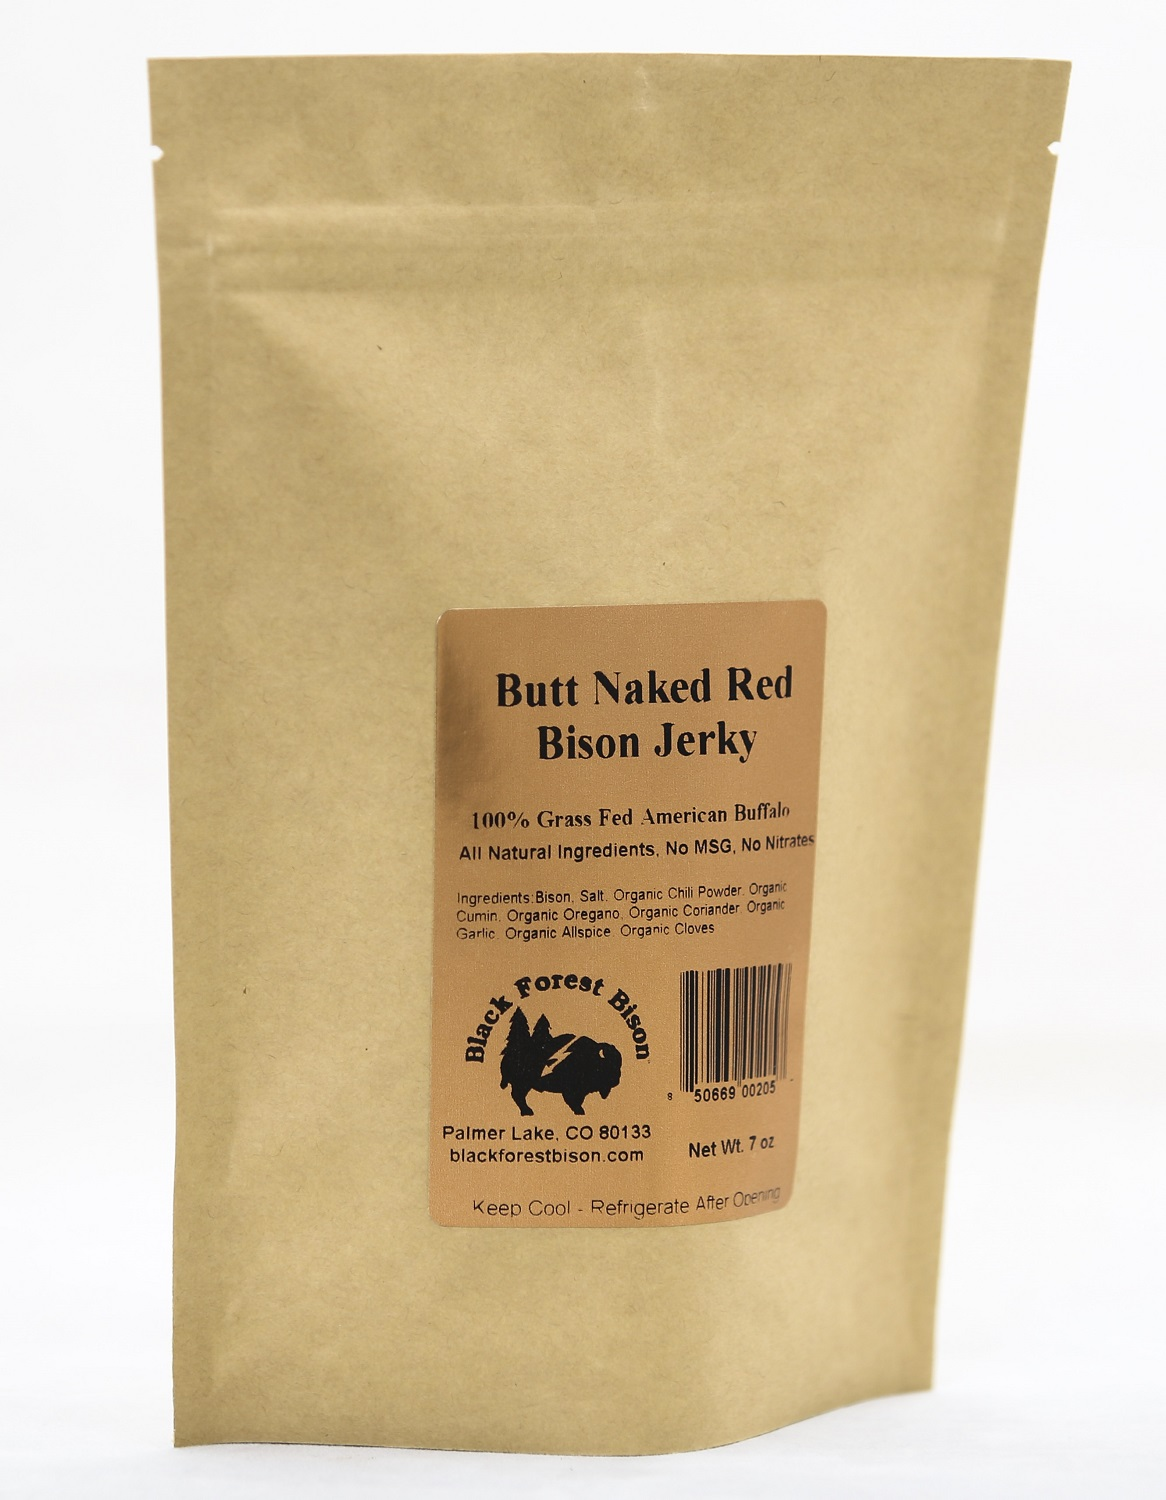 Butt Naked Red Bison Jerky